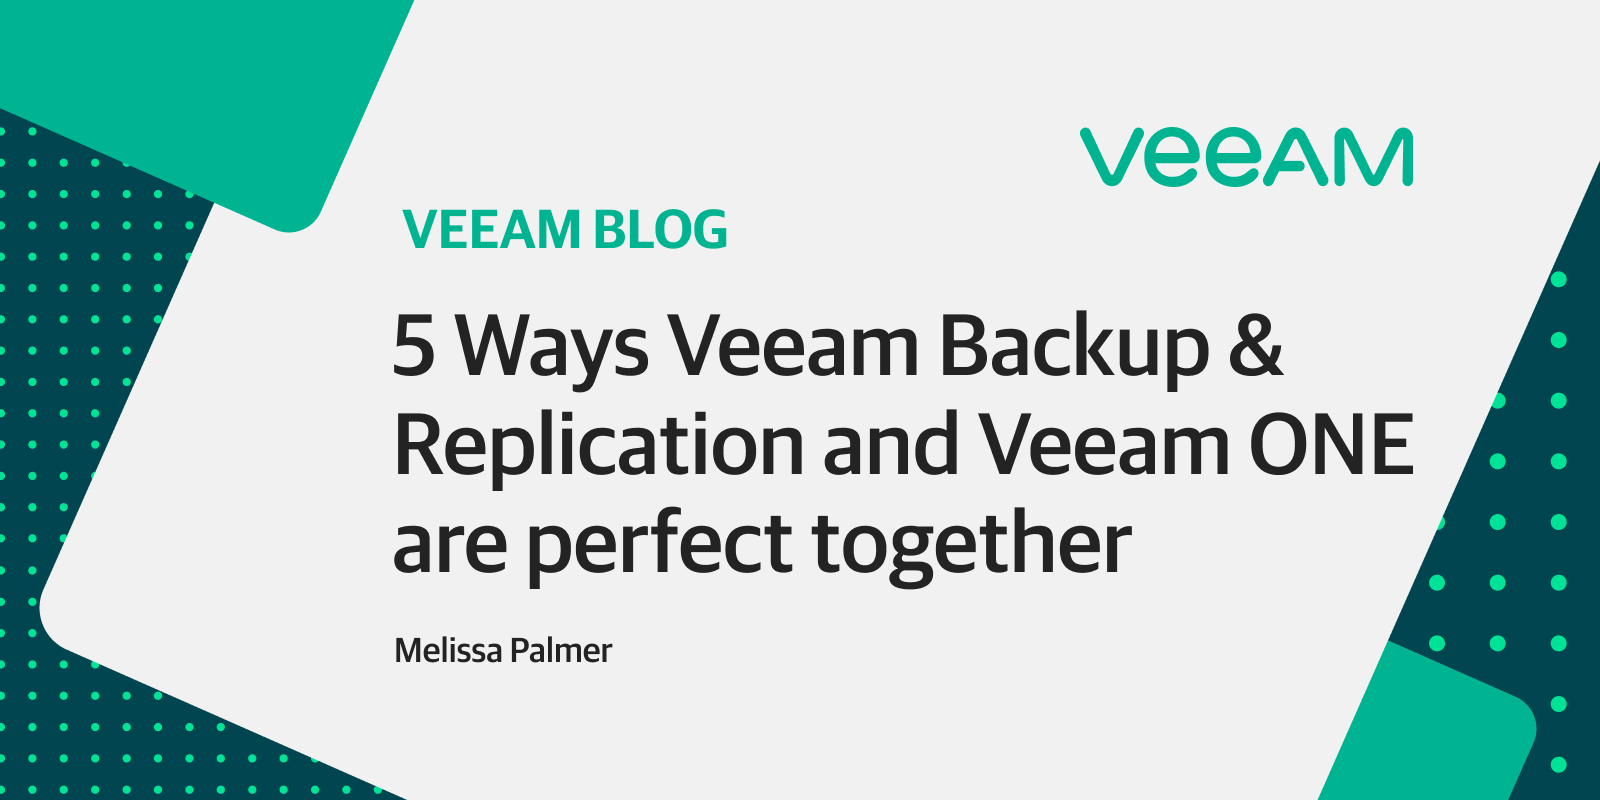 5 Ways Veeam Backup & Replication and Veeam ONE are perfect together